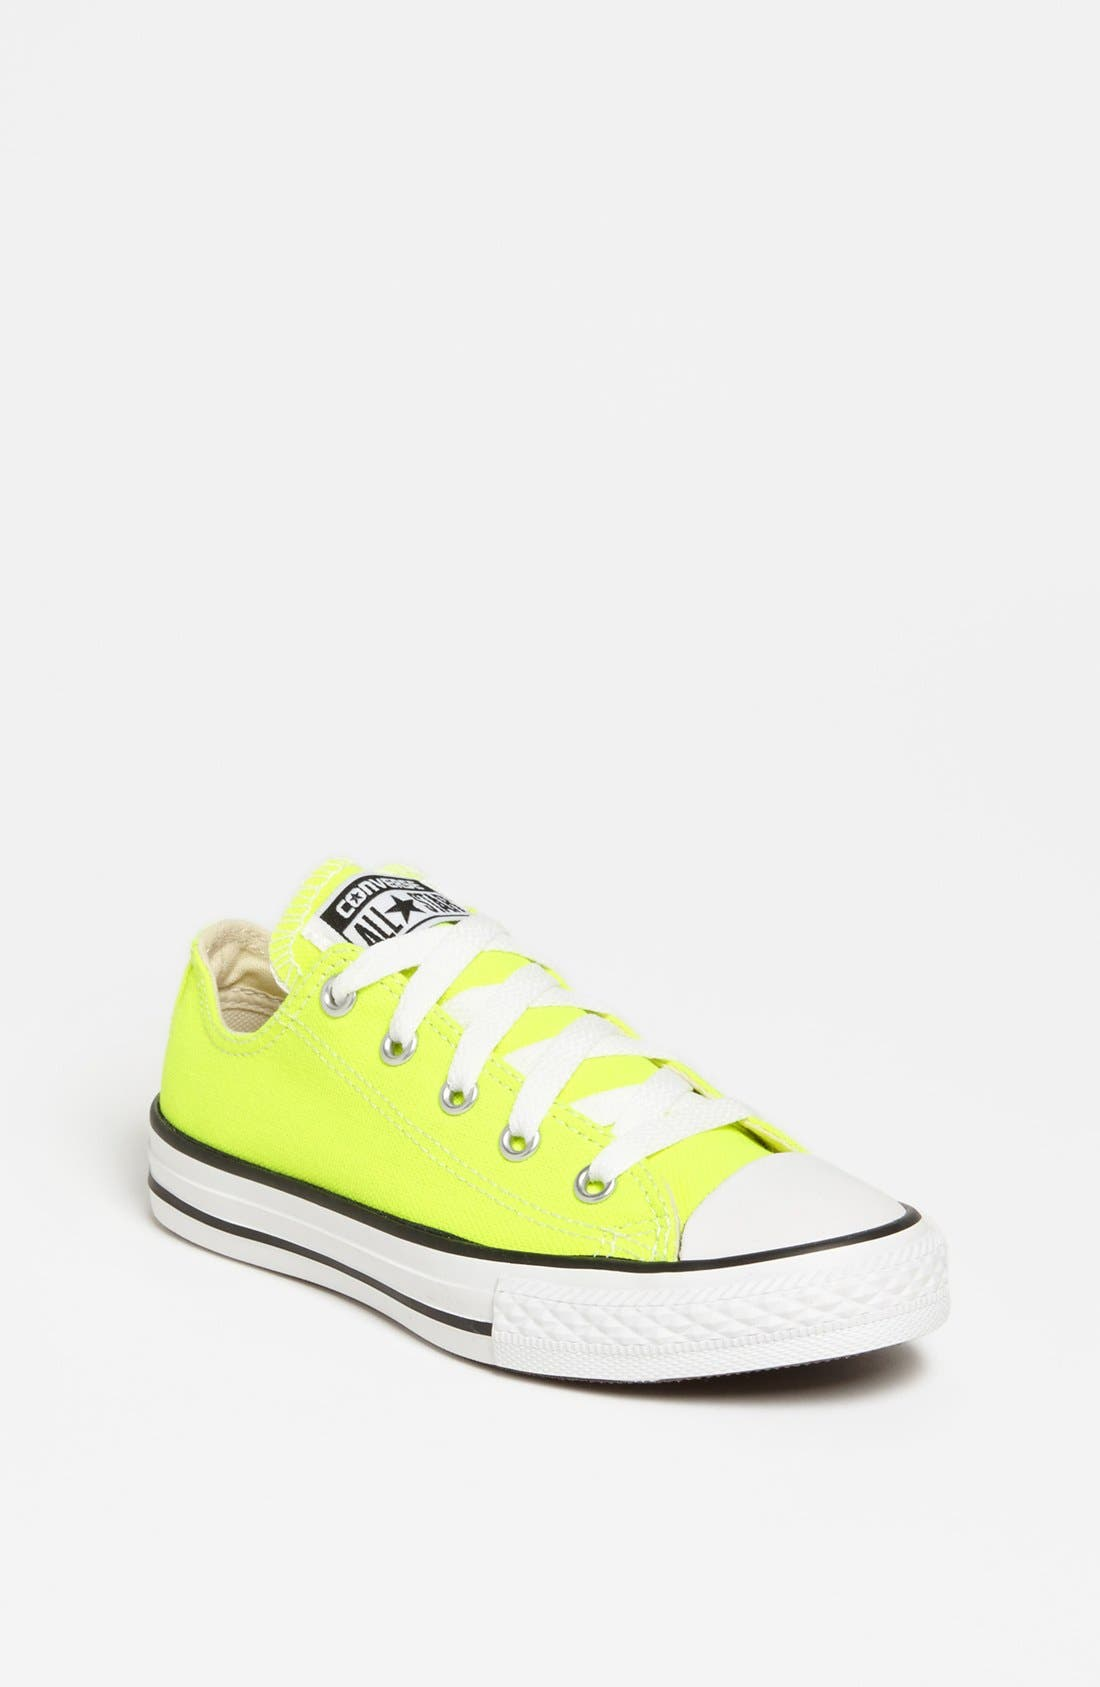 Alternate Image 1 Selected - Converse Chuck Taylor® 'Specialty' Sneaker (Toddler & Little Kid)